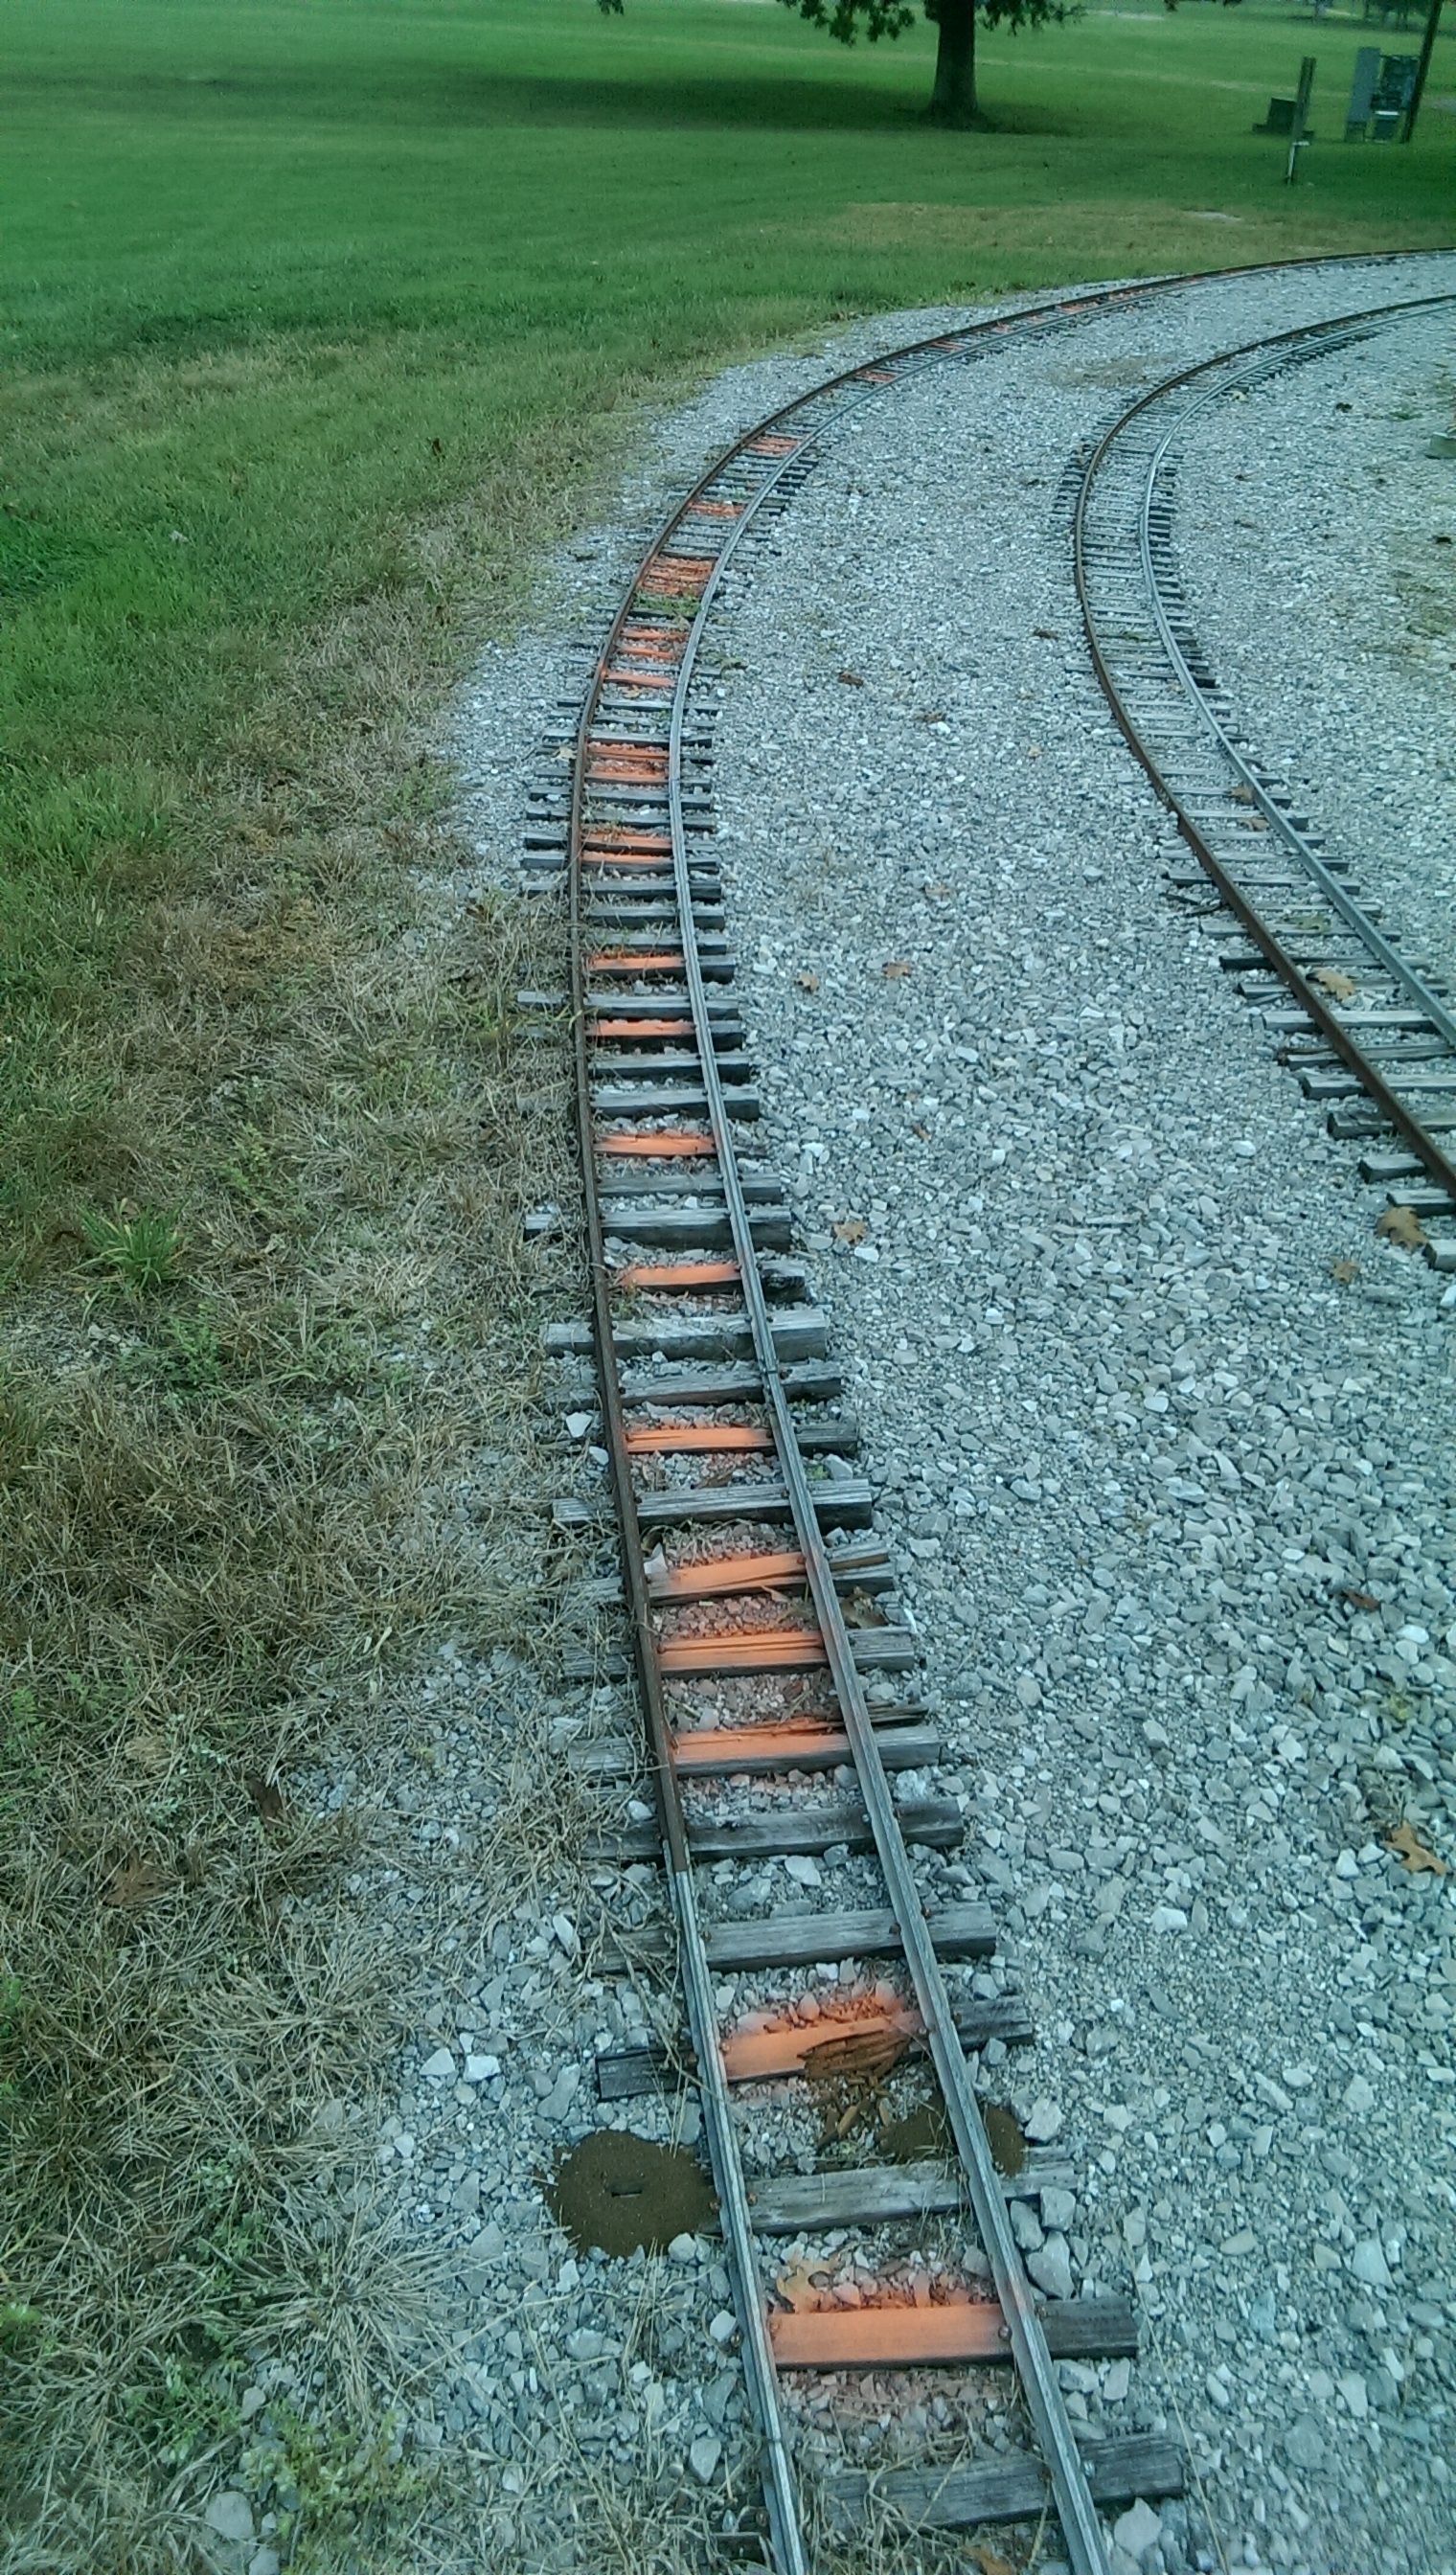 Currently, work is being done to replace the ties on the Upper Loop section just before the high bridge. The ties marked in orange were in very bad shape so the entire section is being replaced. There is also some heat expansion issues to correct.